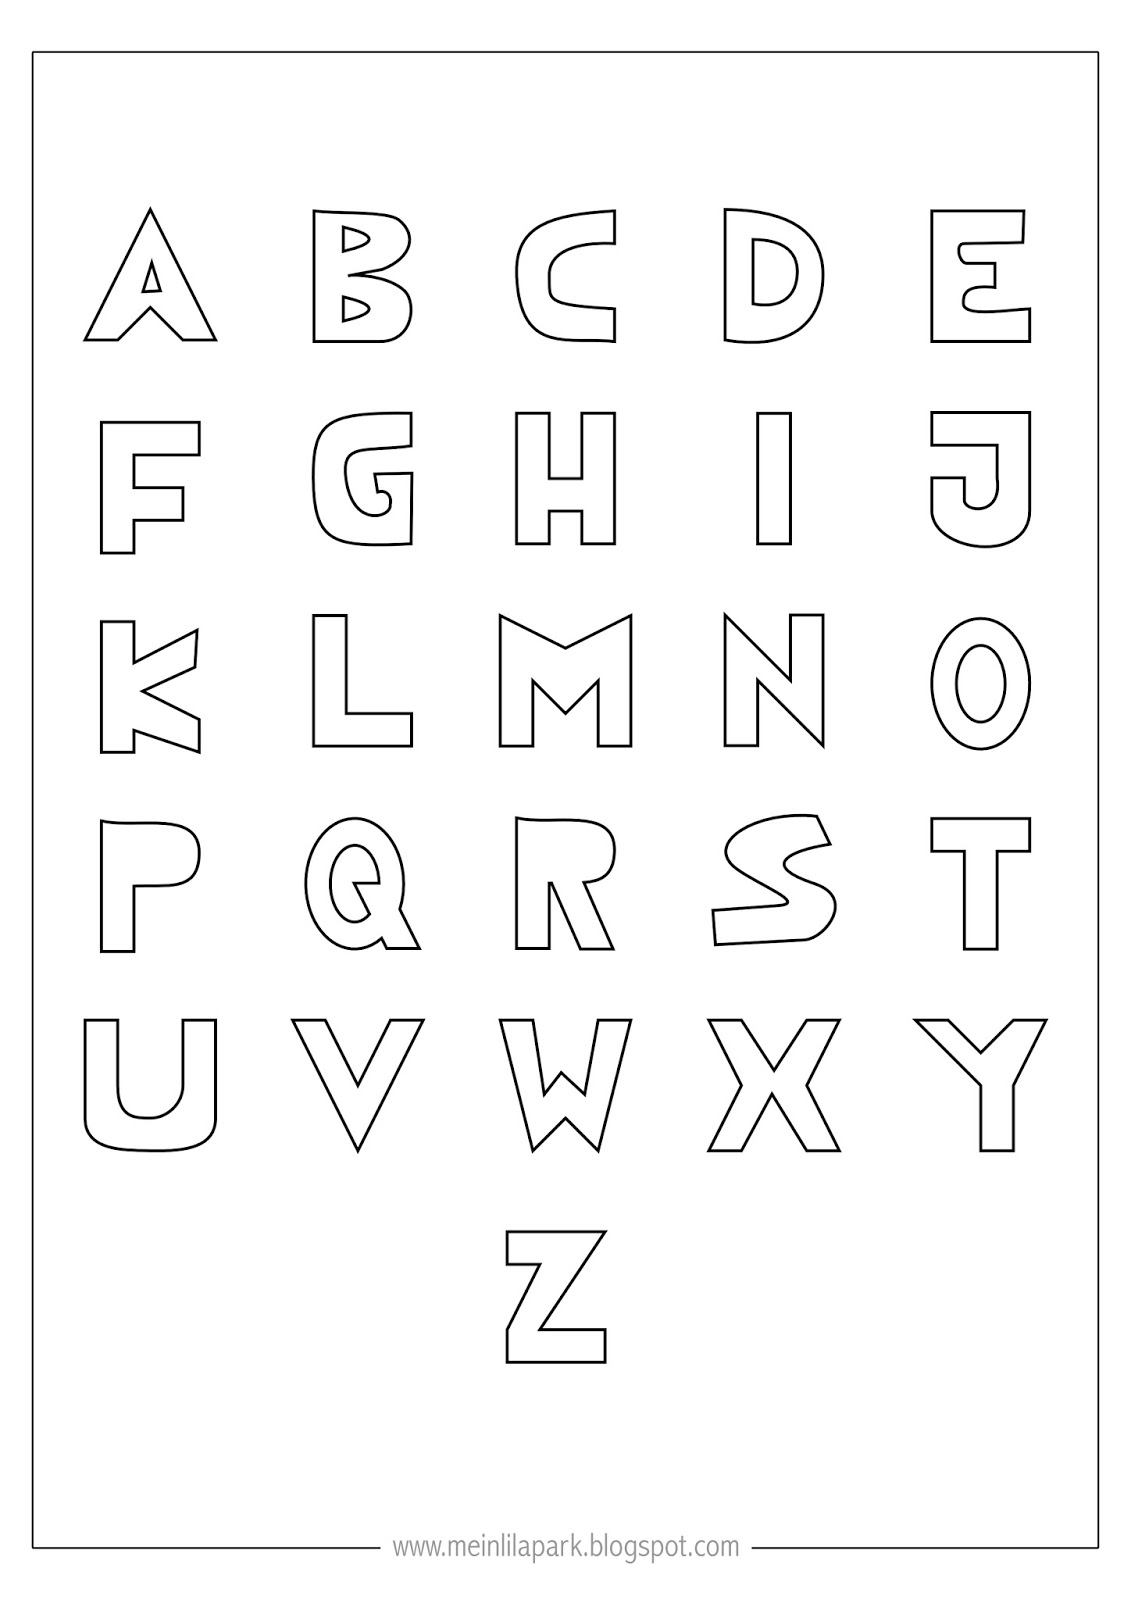 This is a picture of Fabulous Free Printable Letter